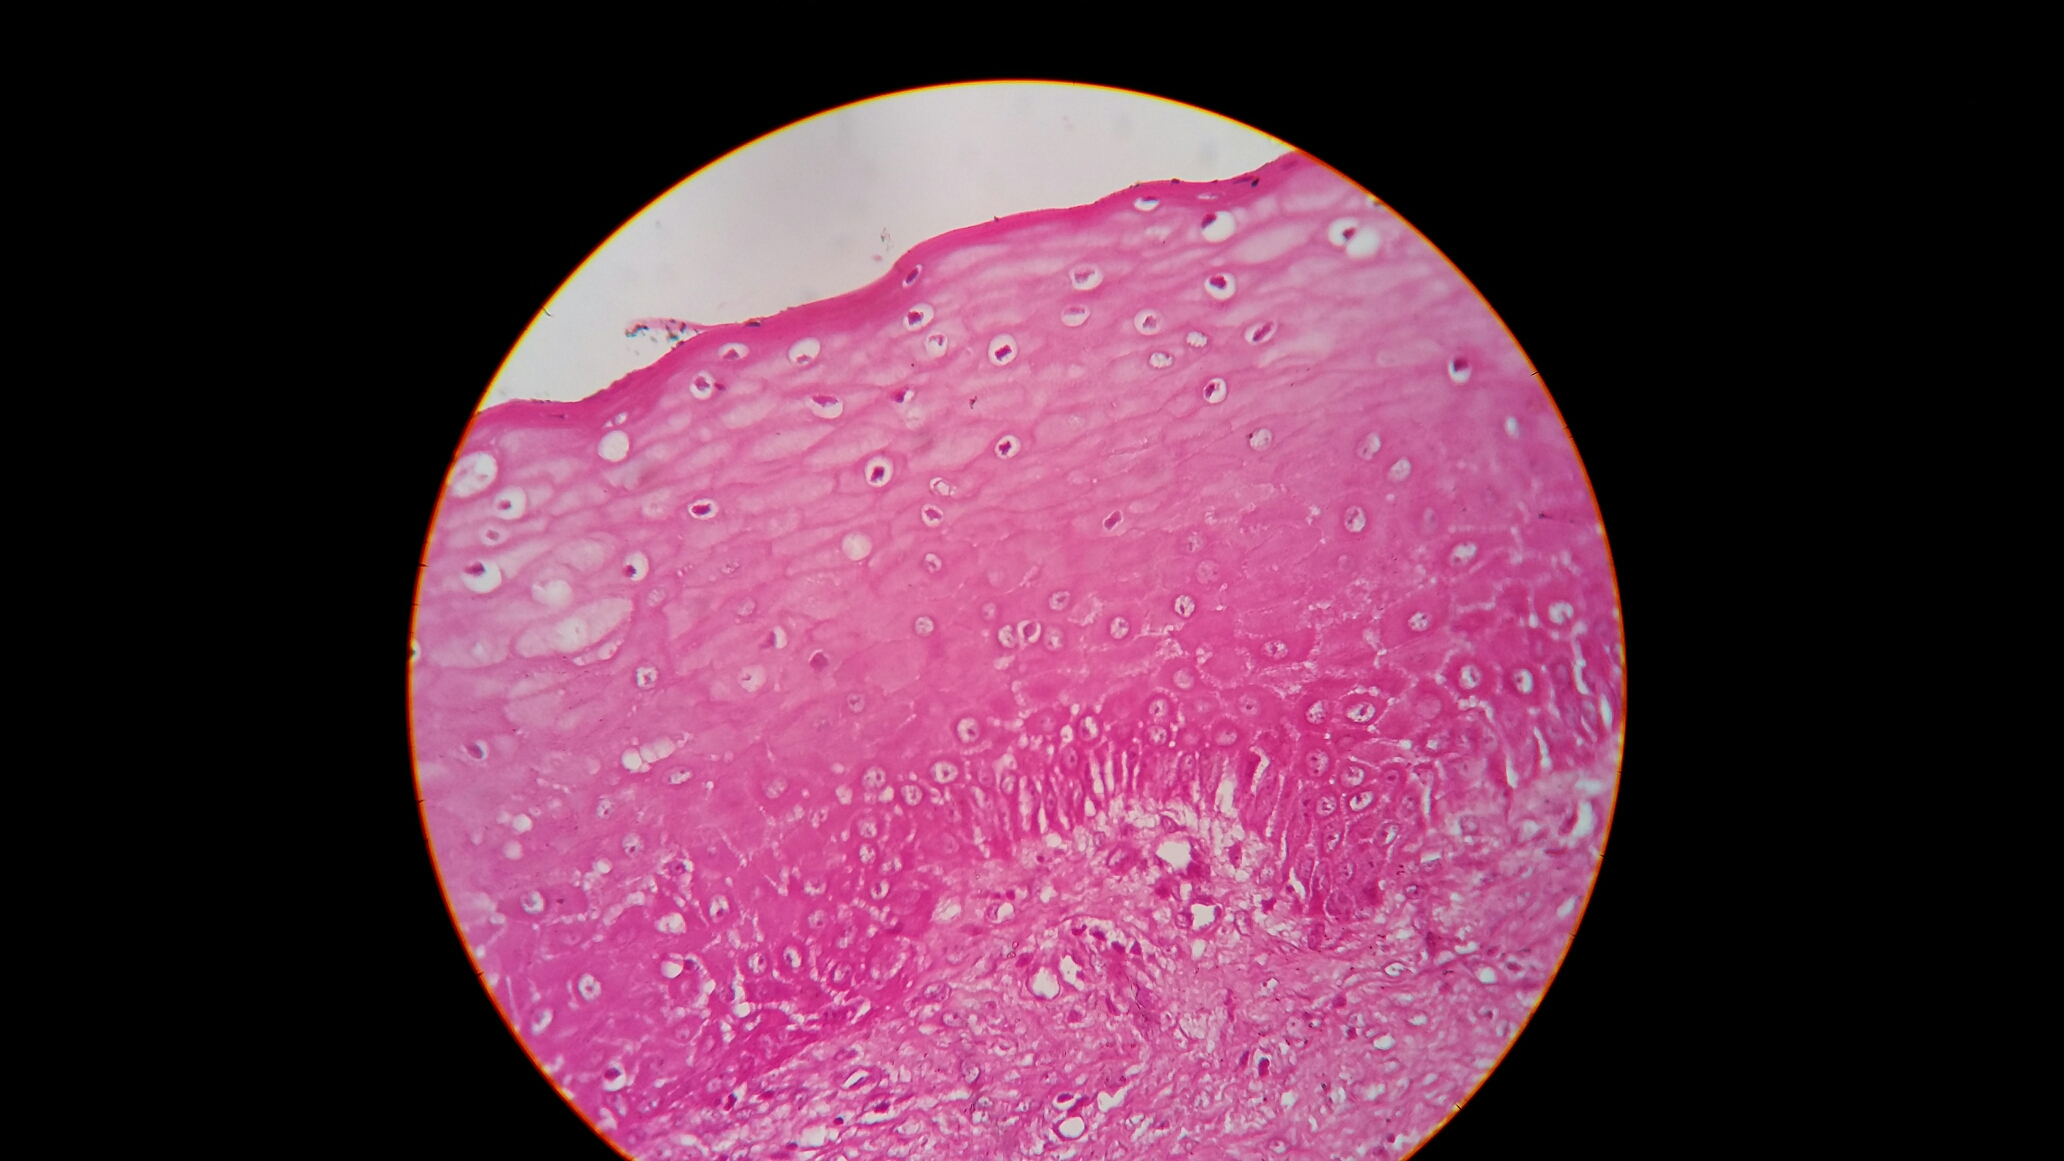 Is this pyogenic granuloma?